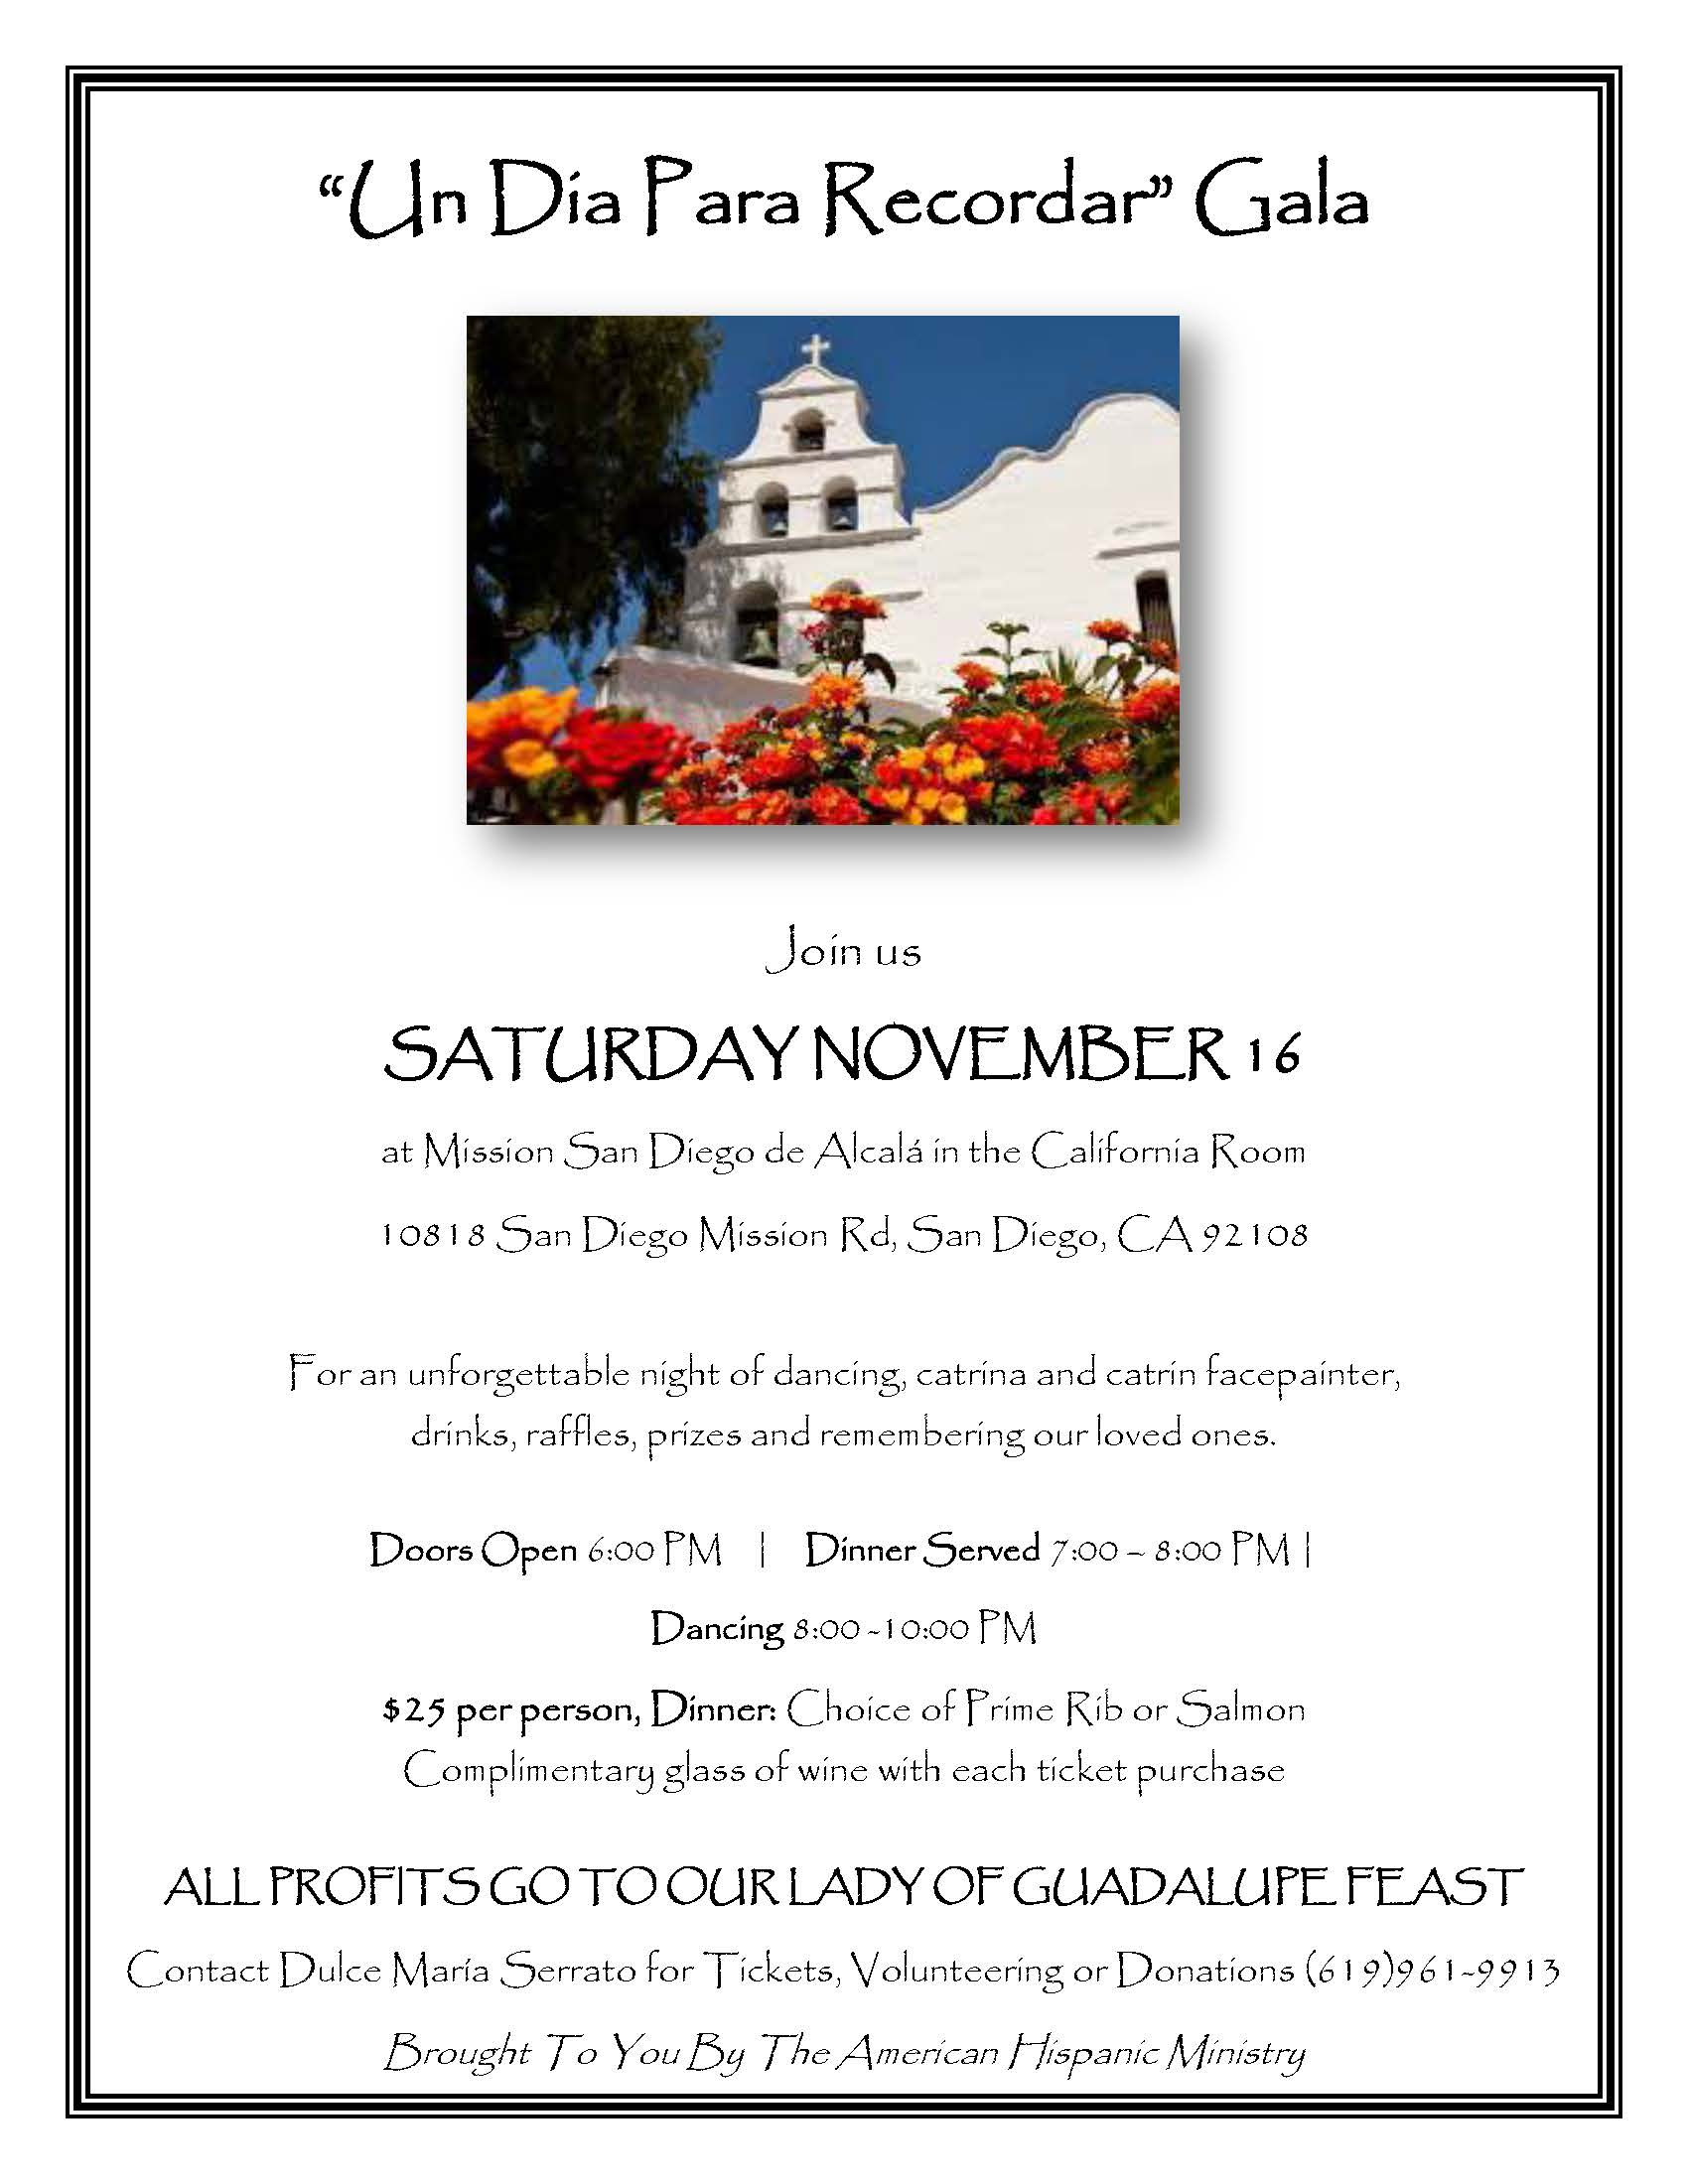 A Day to Remember Gala - Fundraiser for Our Lady of Guadalupe Feast Day Celebration